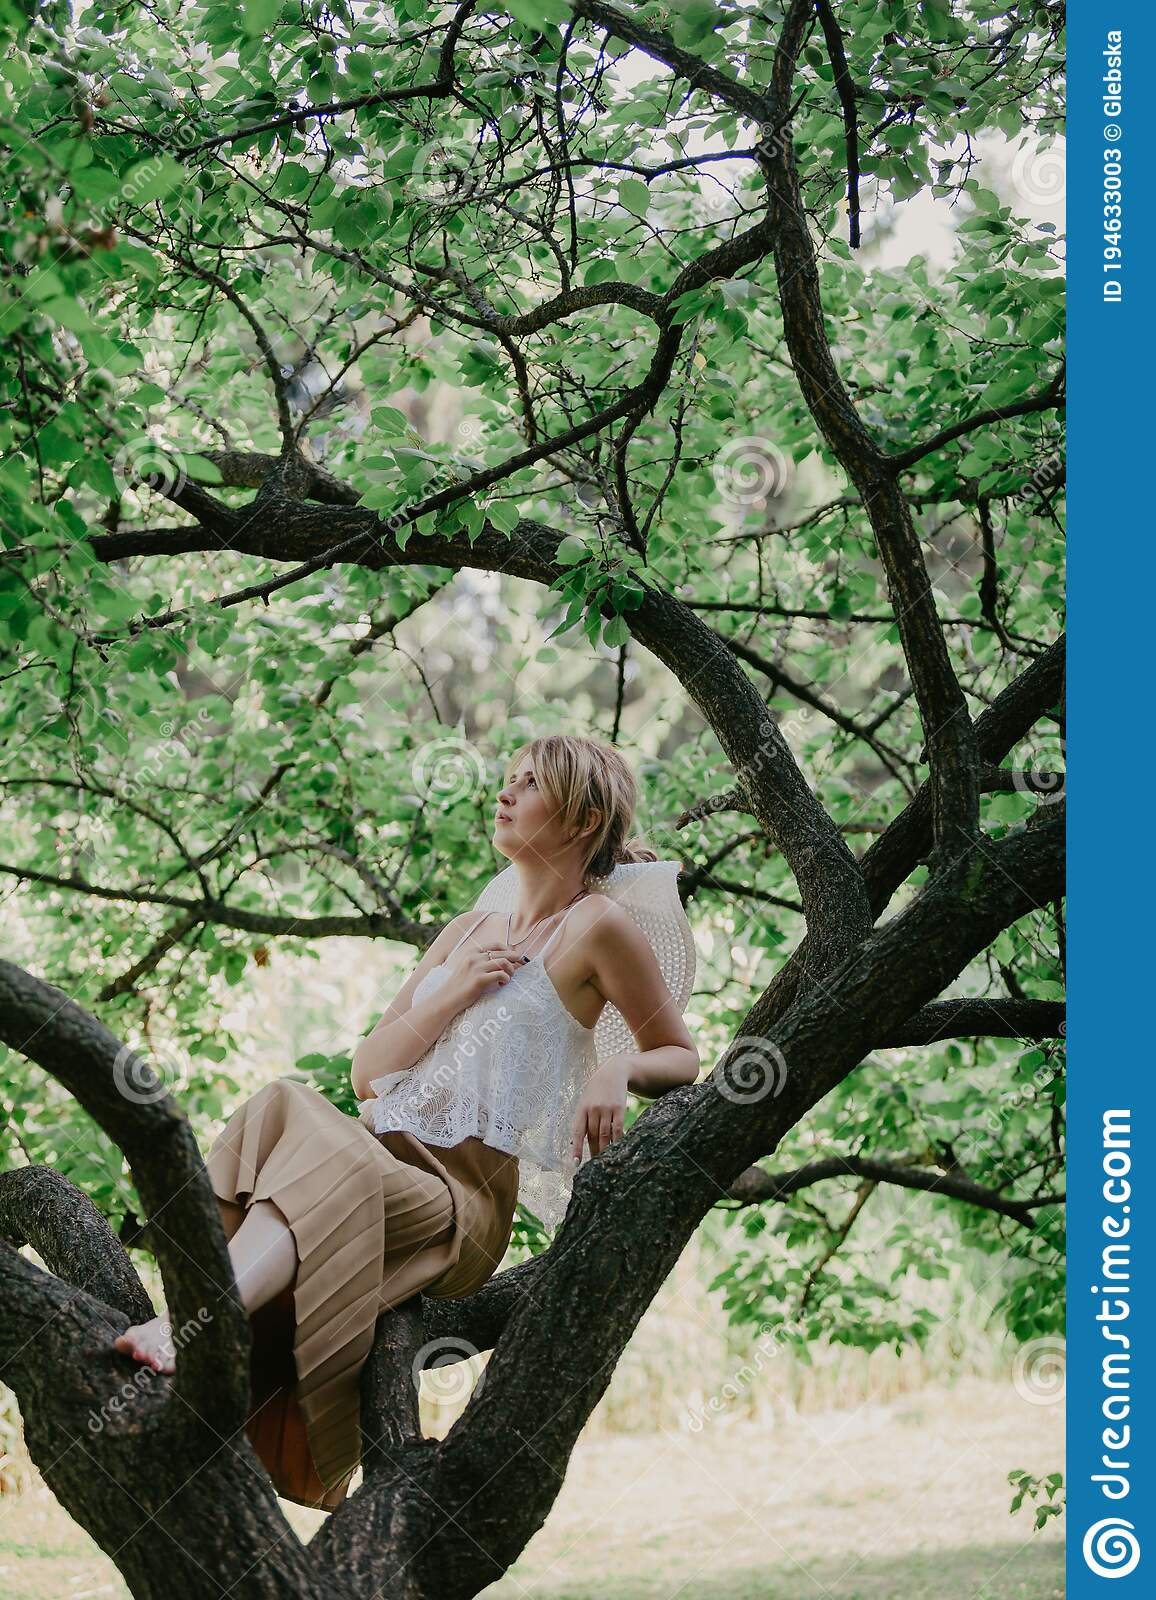 https://thumbs.dreamstime.com/z/cute-blonde-sits-tree-portrait-nature-slim-stylish-girl-white-top-sitting-branch-summer-day-194633003.jpg